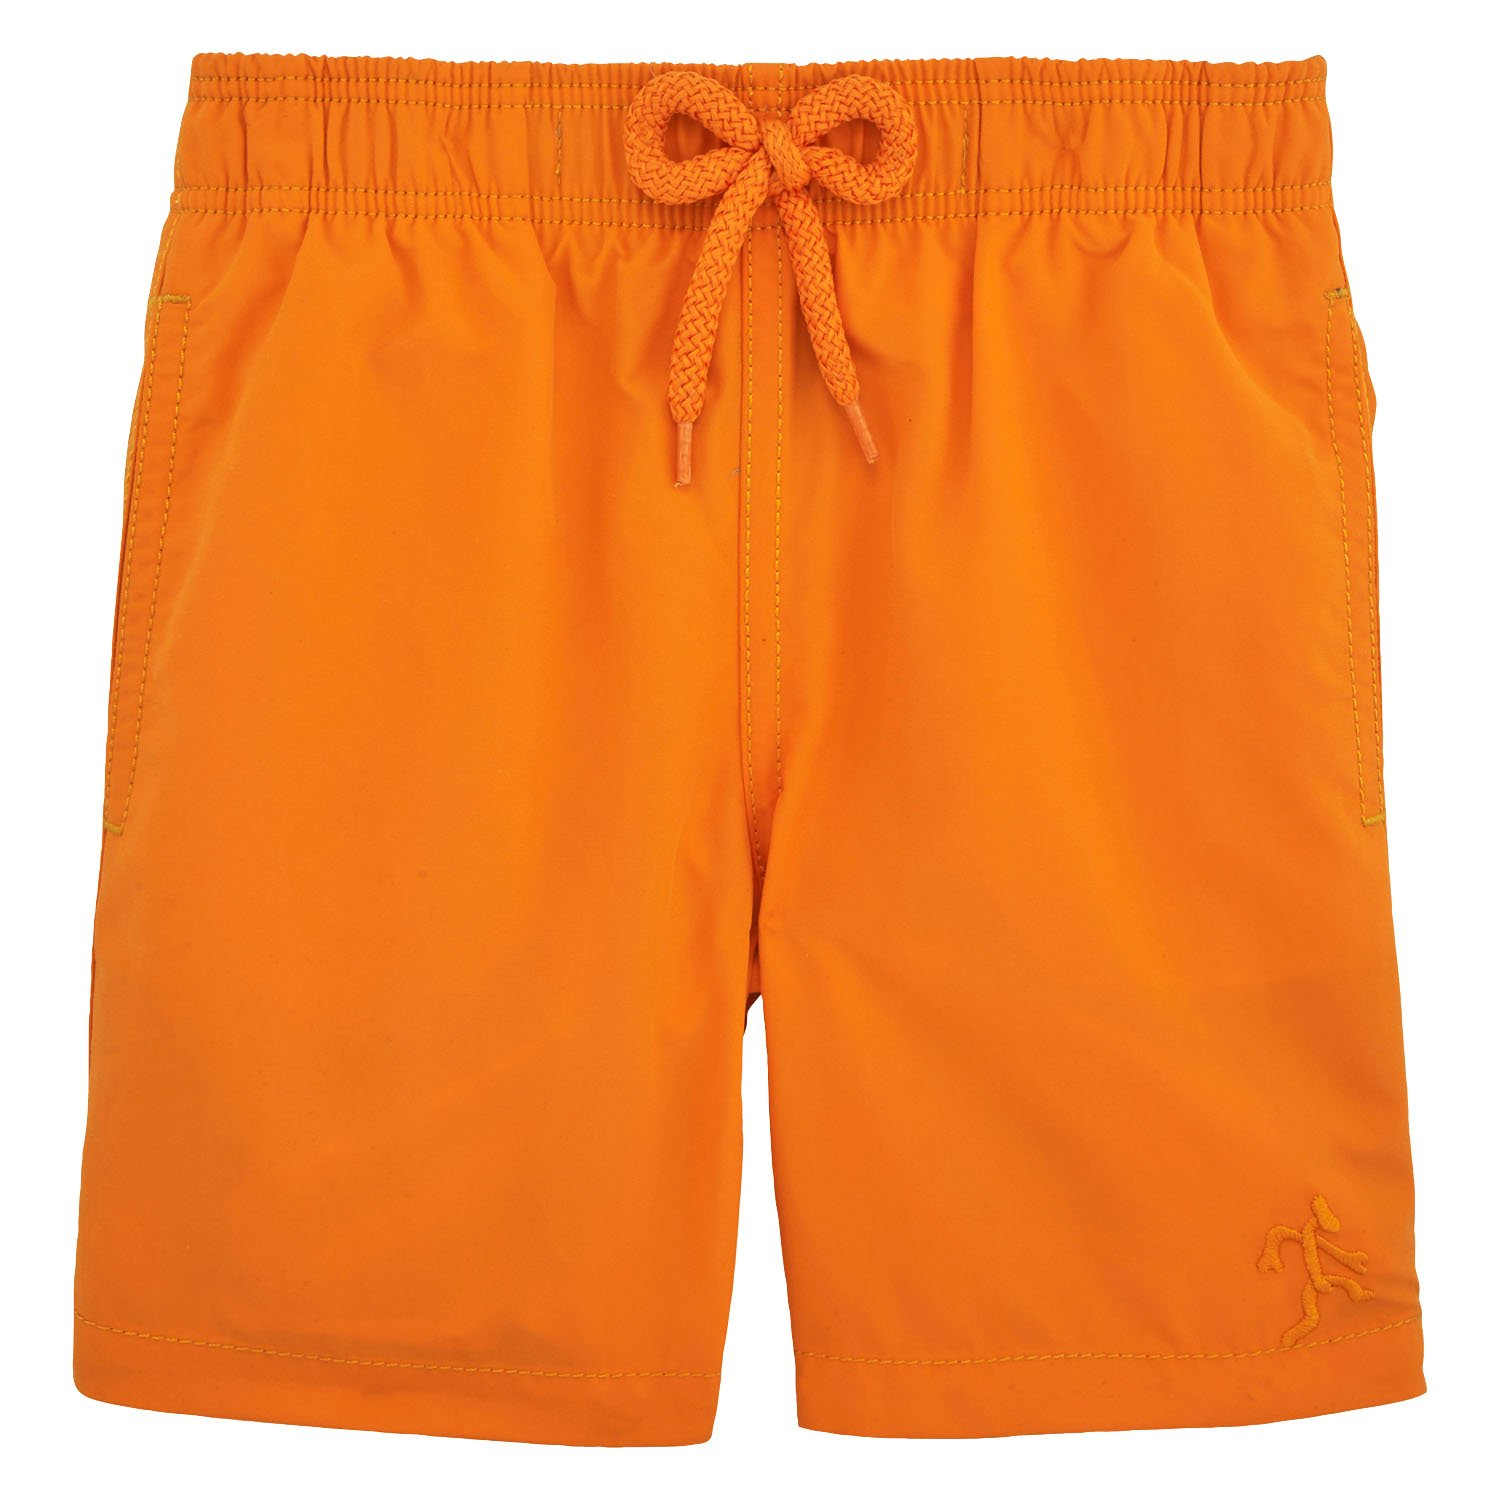 Vilebrequin Water-reactive Danse du feu Swim Shorts - Boys - papaya - 6Yrs by Vilebrequin